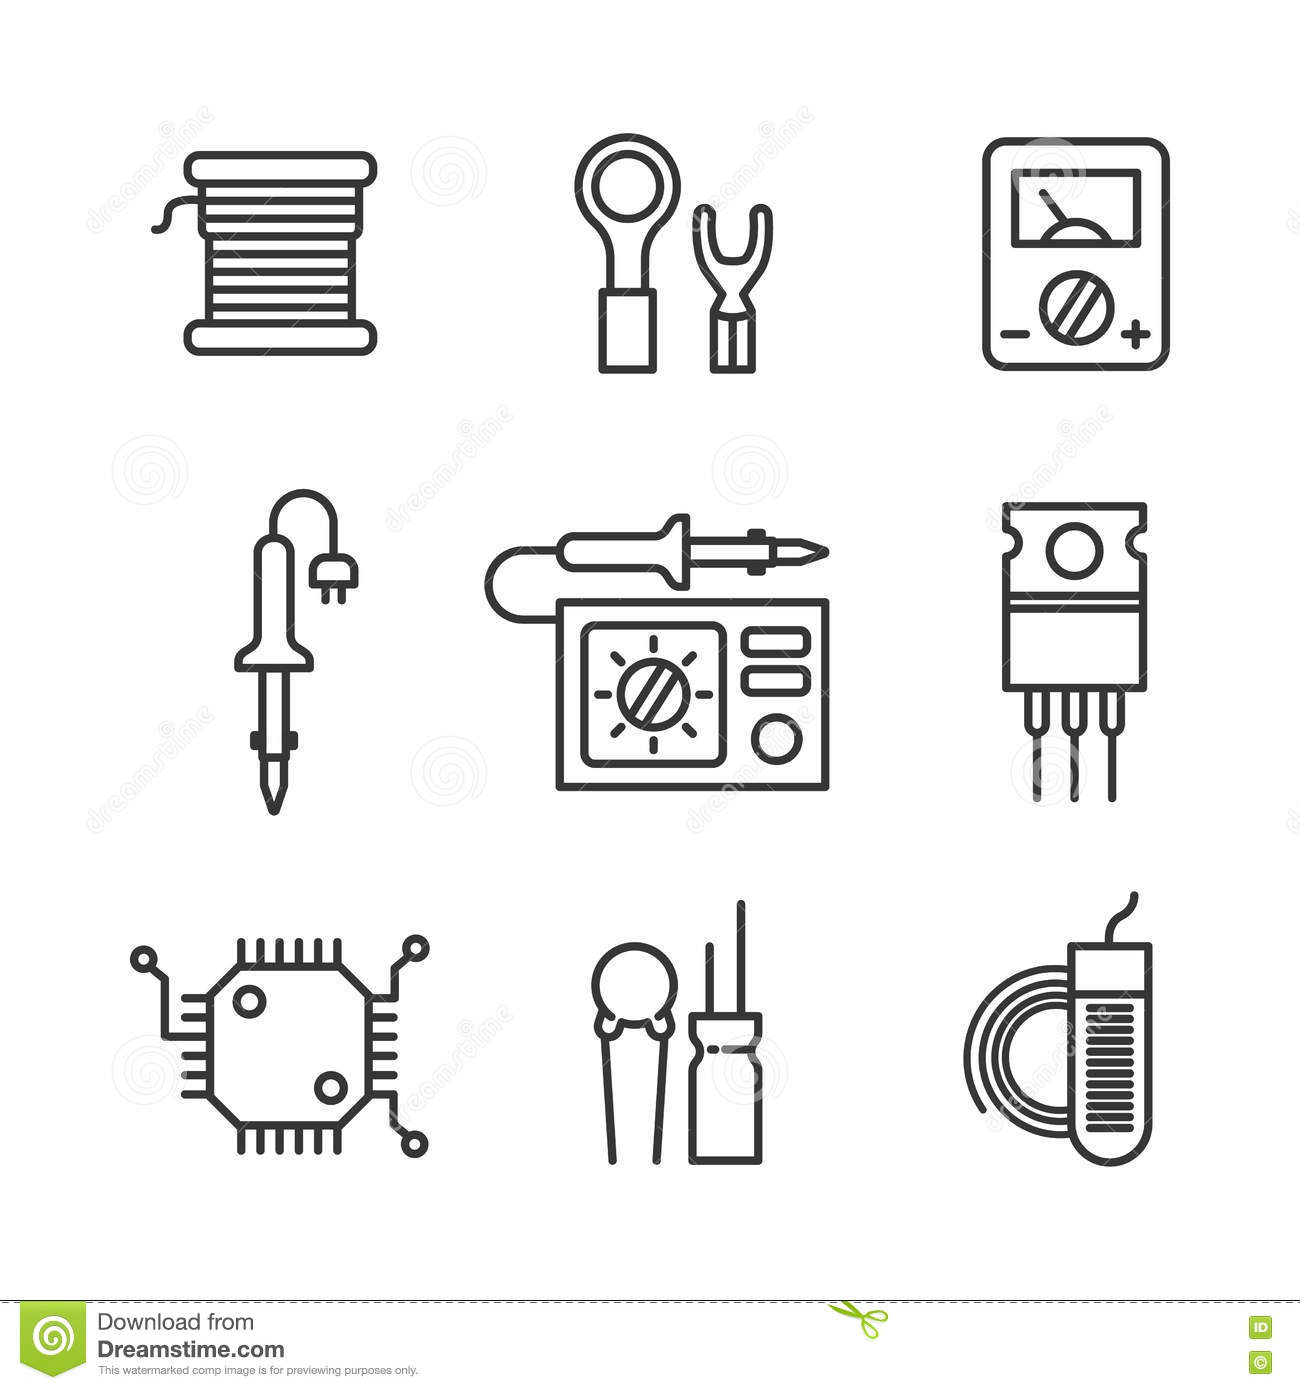 Micro Electronic Components Royalty Free Stock Image